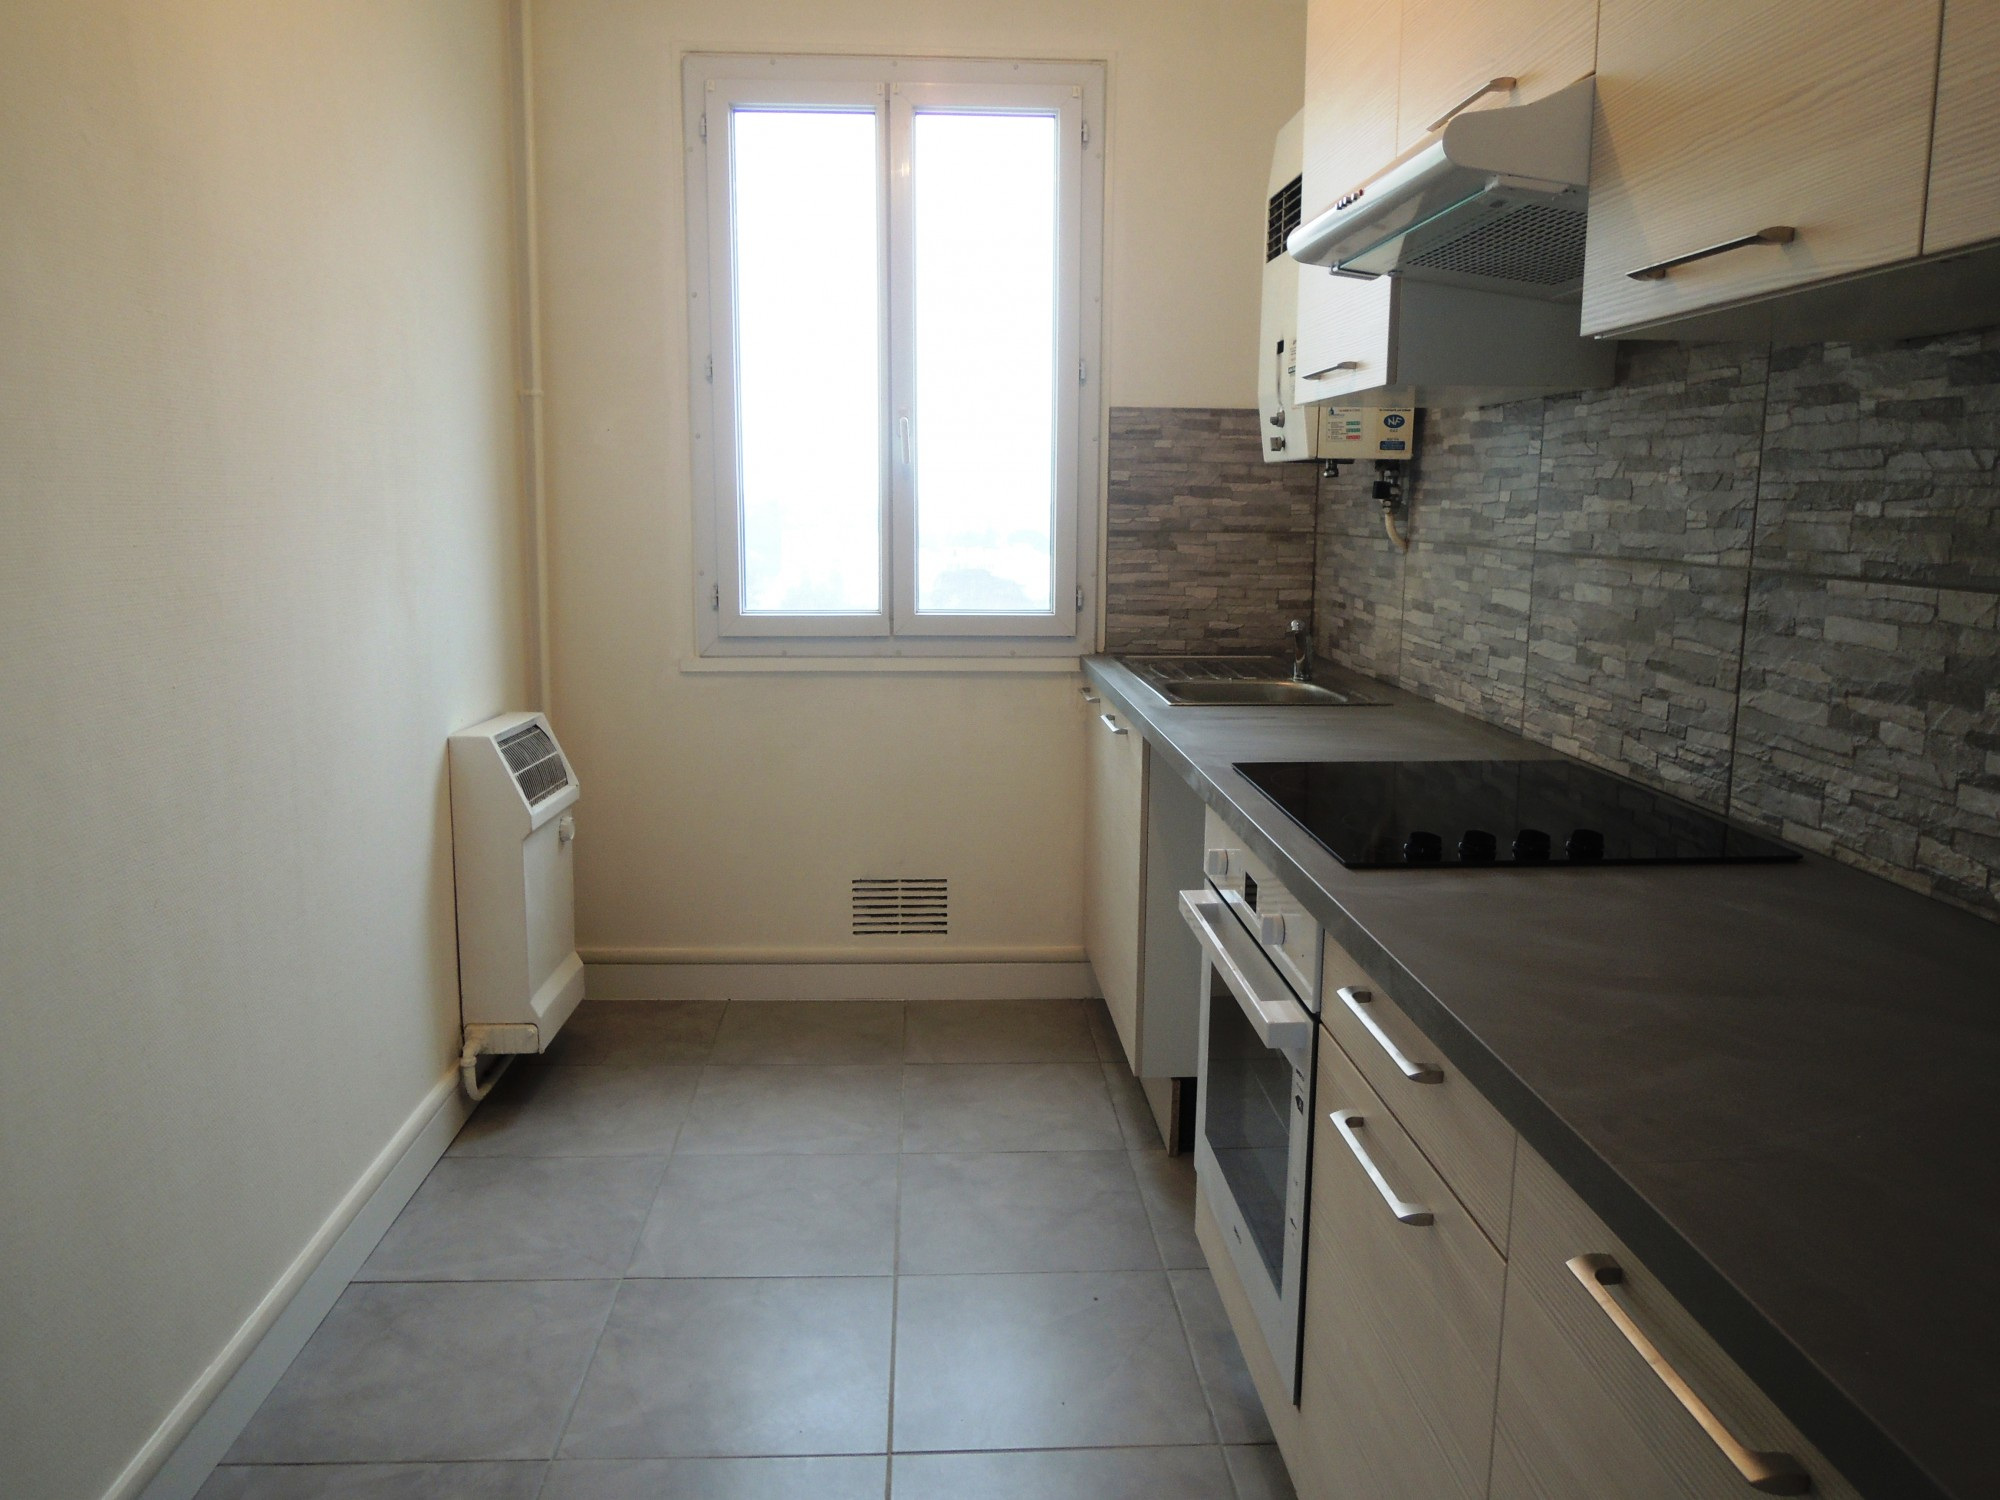 Location Appartement T3 F3 Bordeaux Cauderan  Bru Immobilier